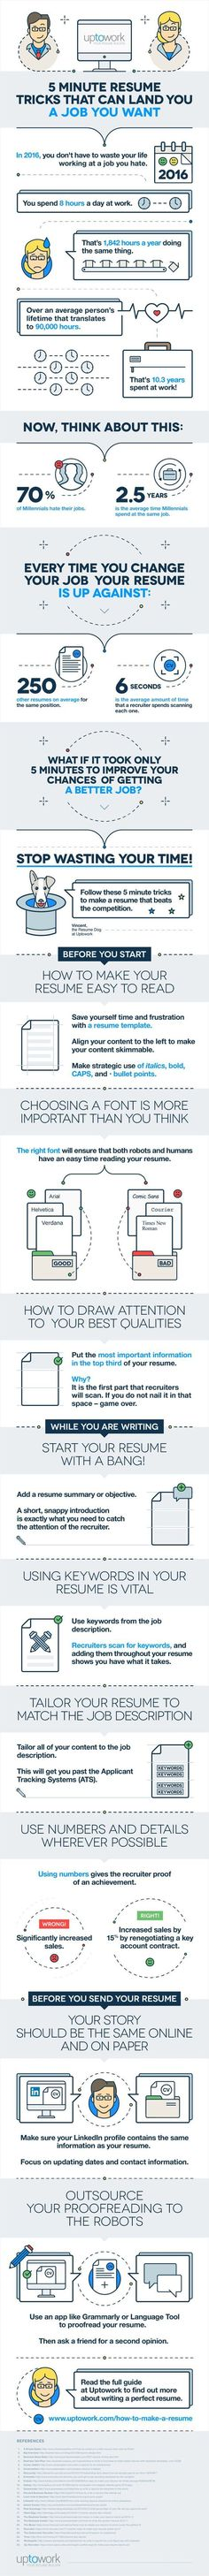 What Skills to Put on a Resume? #Infographic Infographic, Resume - 5 resume tips